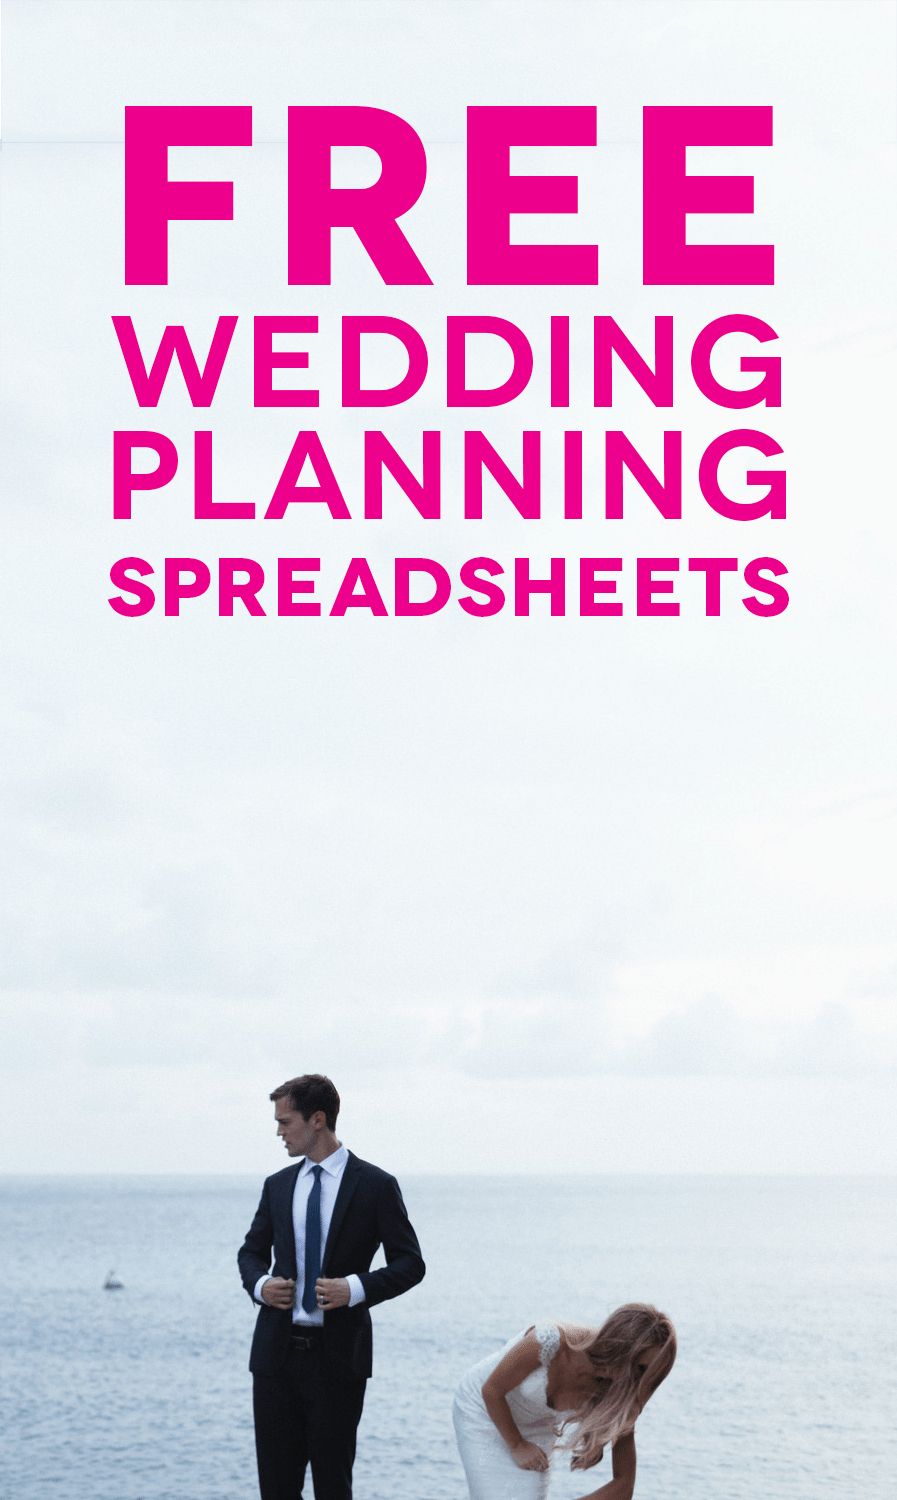 How To Make A Wedding List Spreadsheet With Regard To Customizable And Free Wedding Spreadsheets